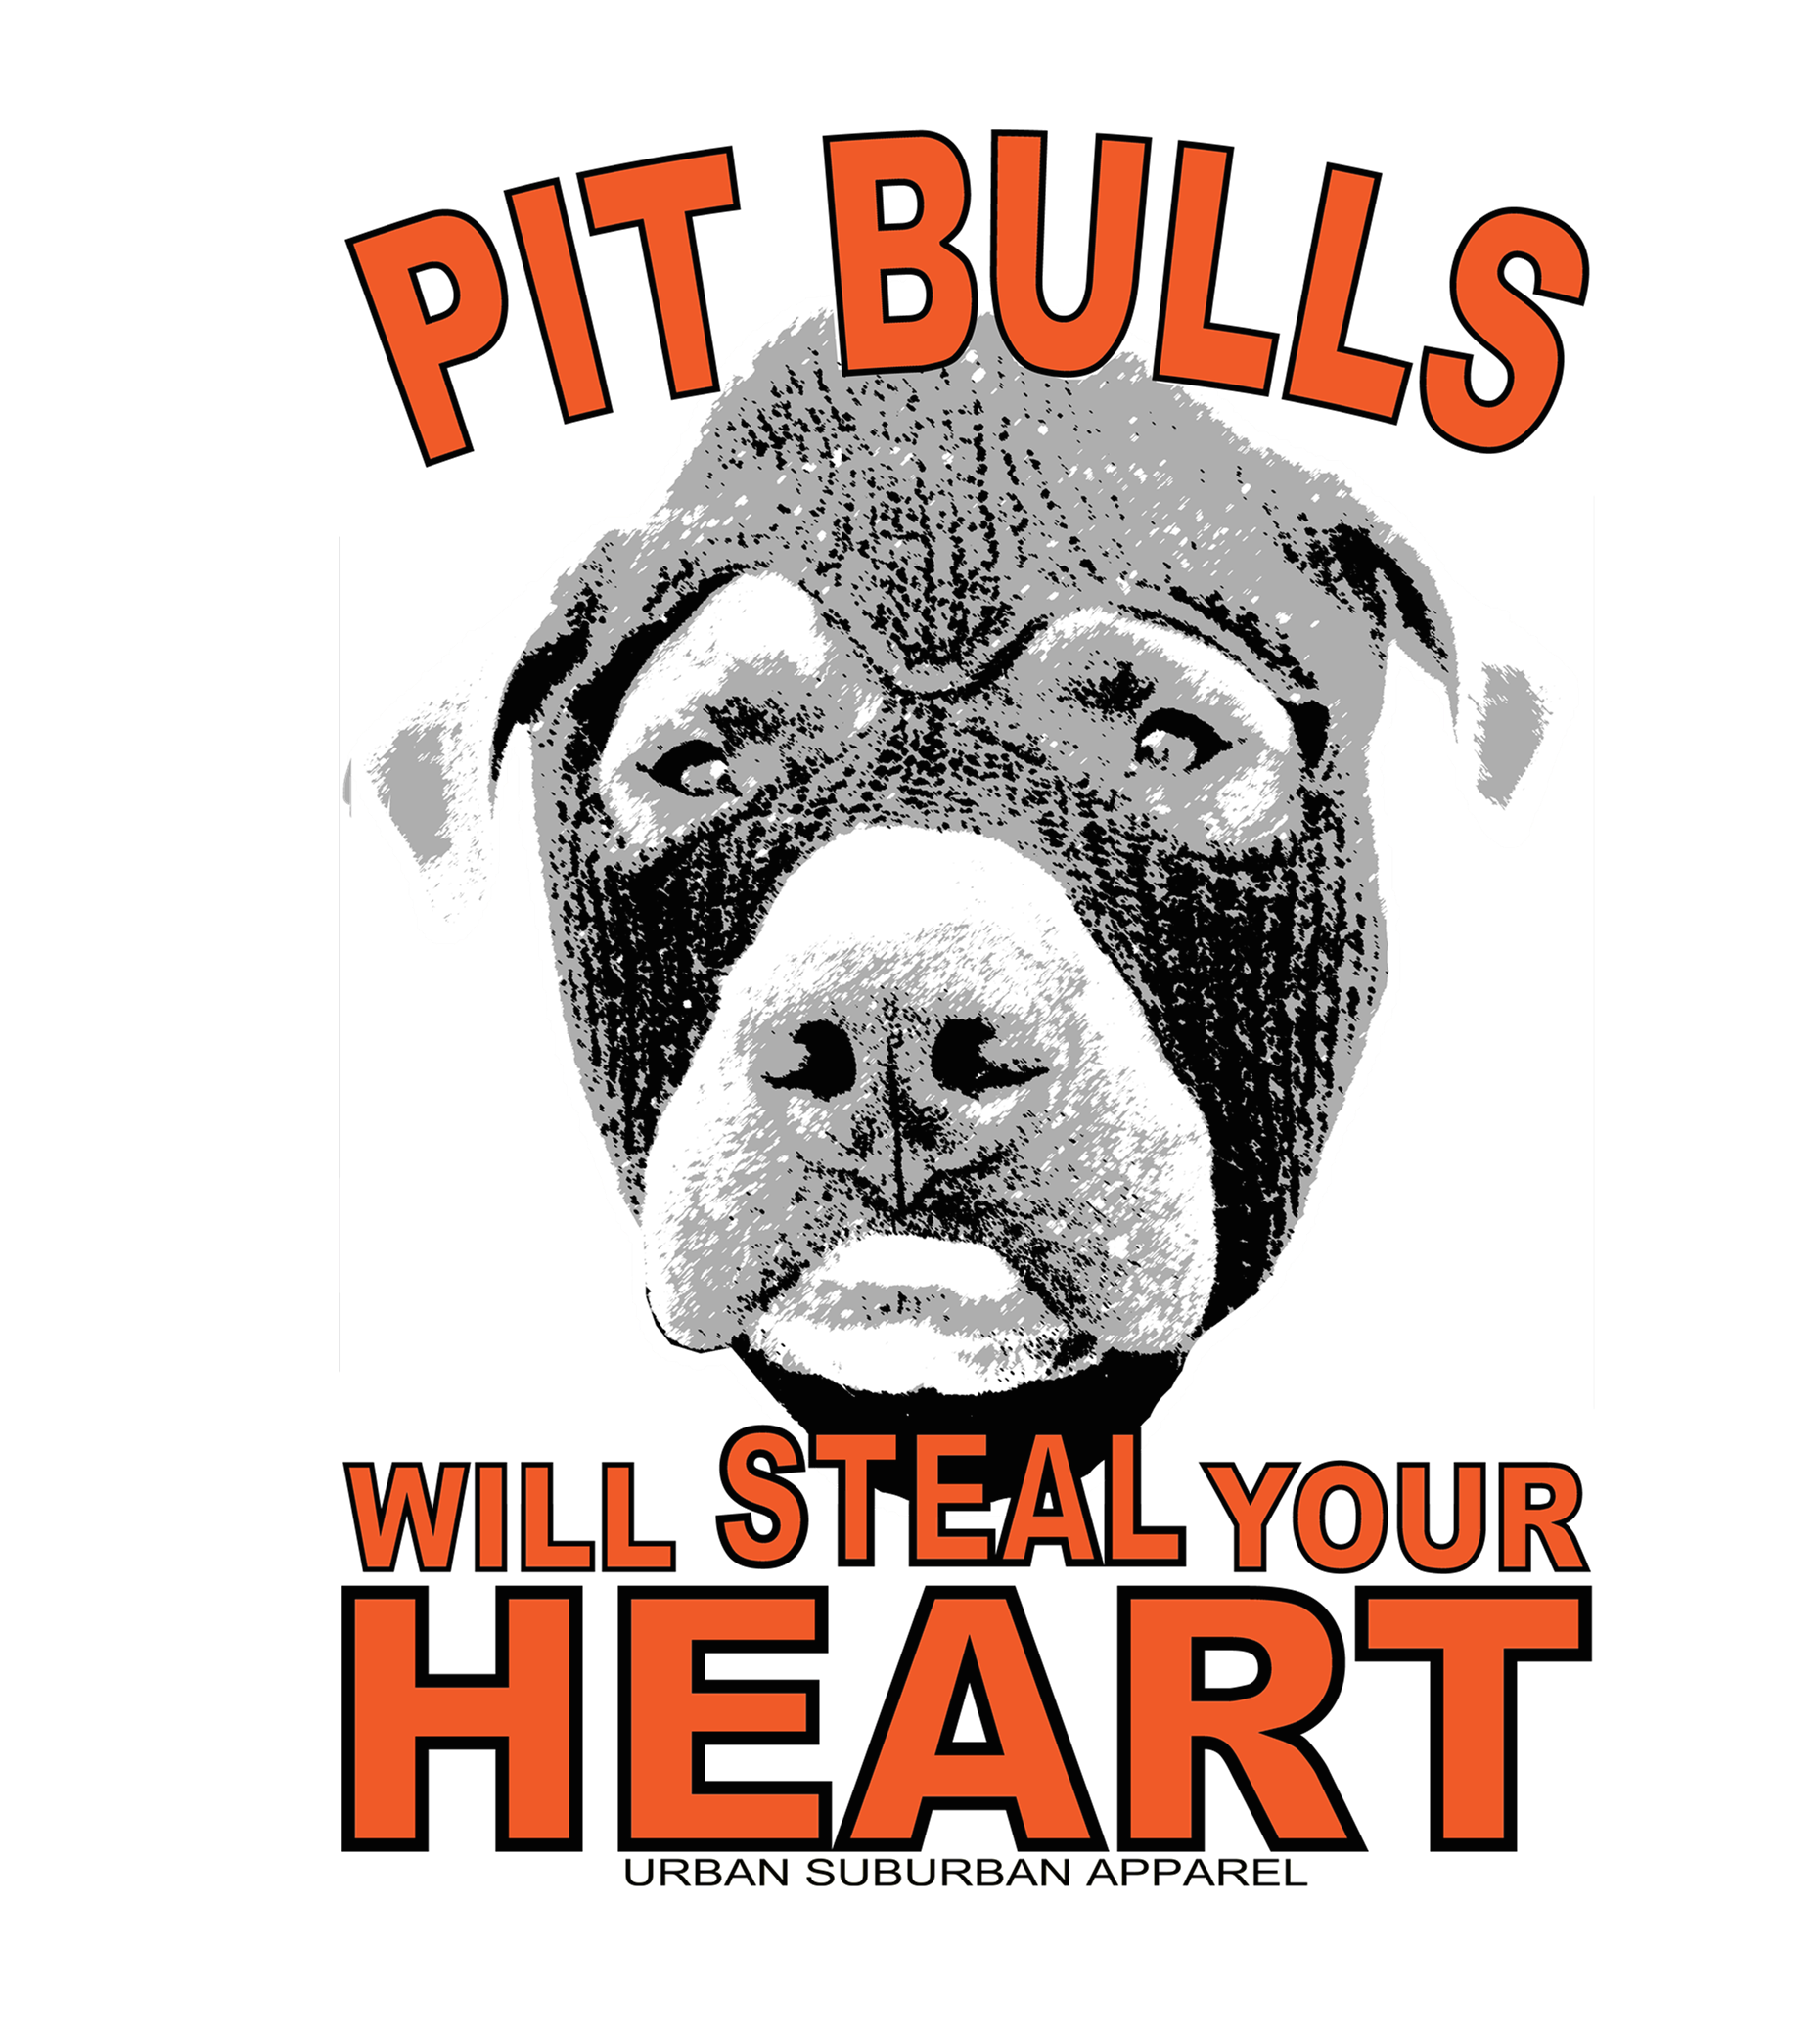 PIT BULLS WILL STEAL YOUR HEART